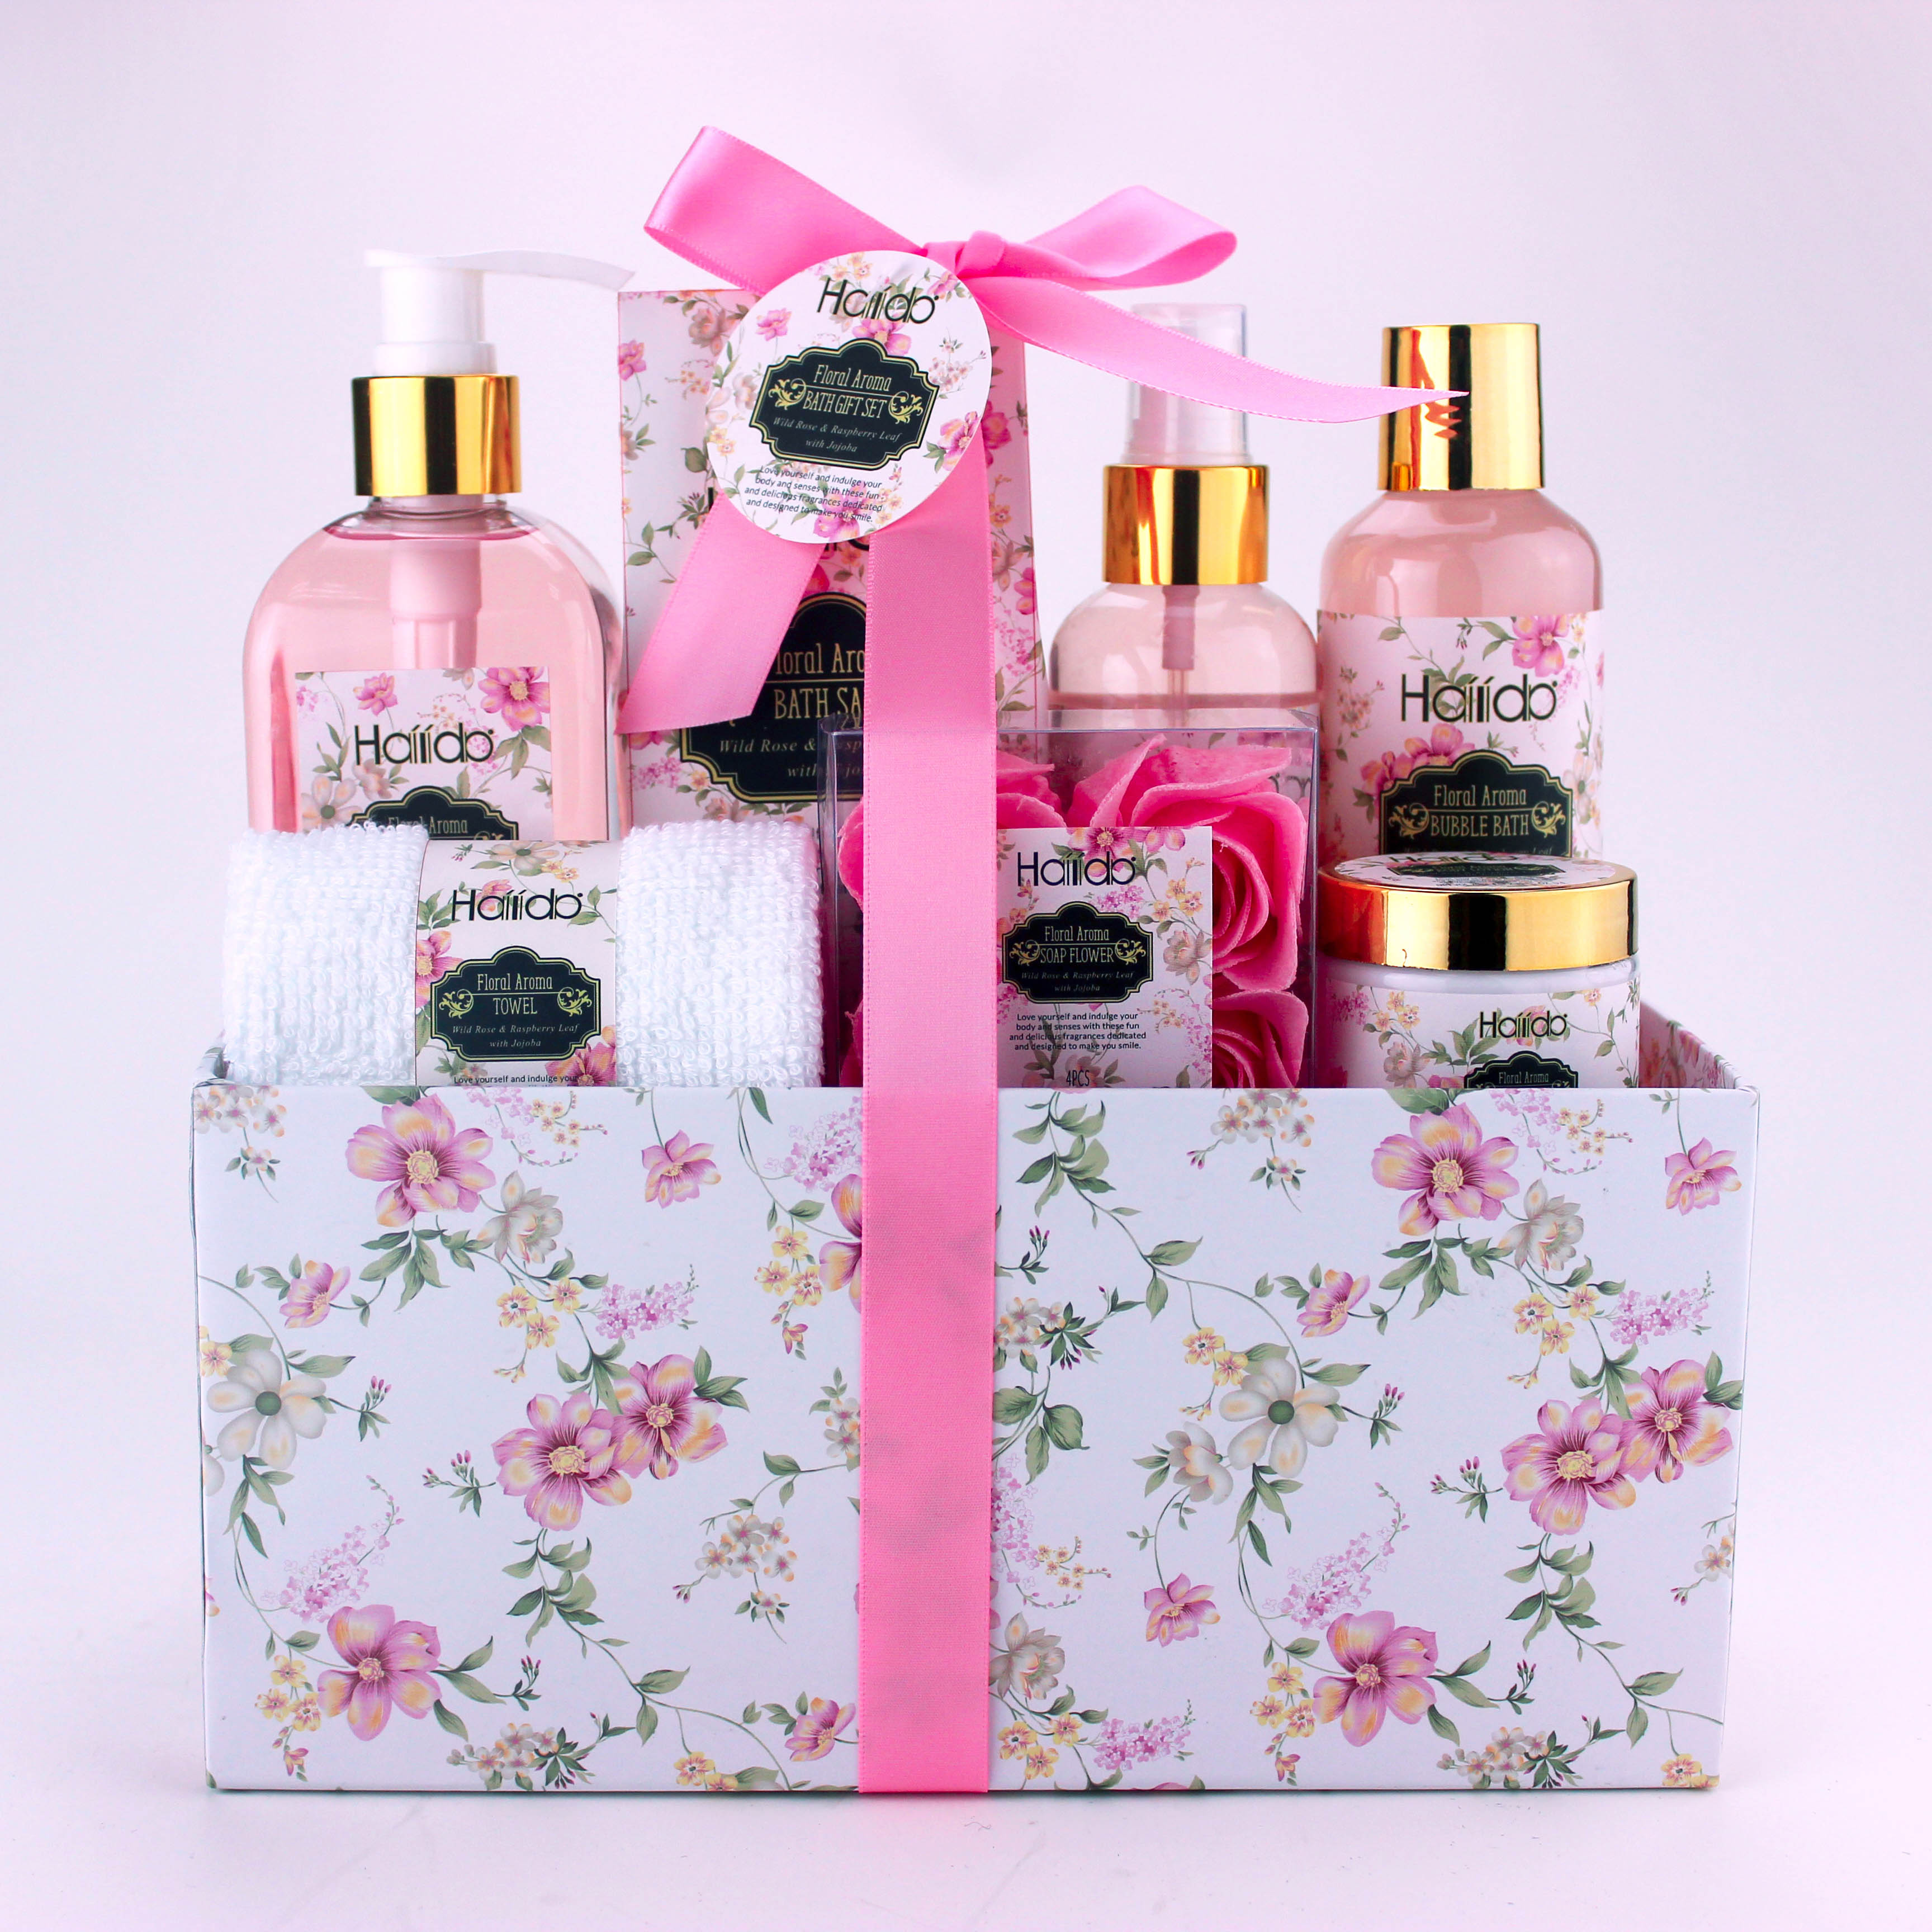 Wholesale flamingo label moisturize body care spa wire basket bath and body gift set